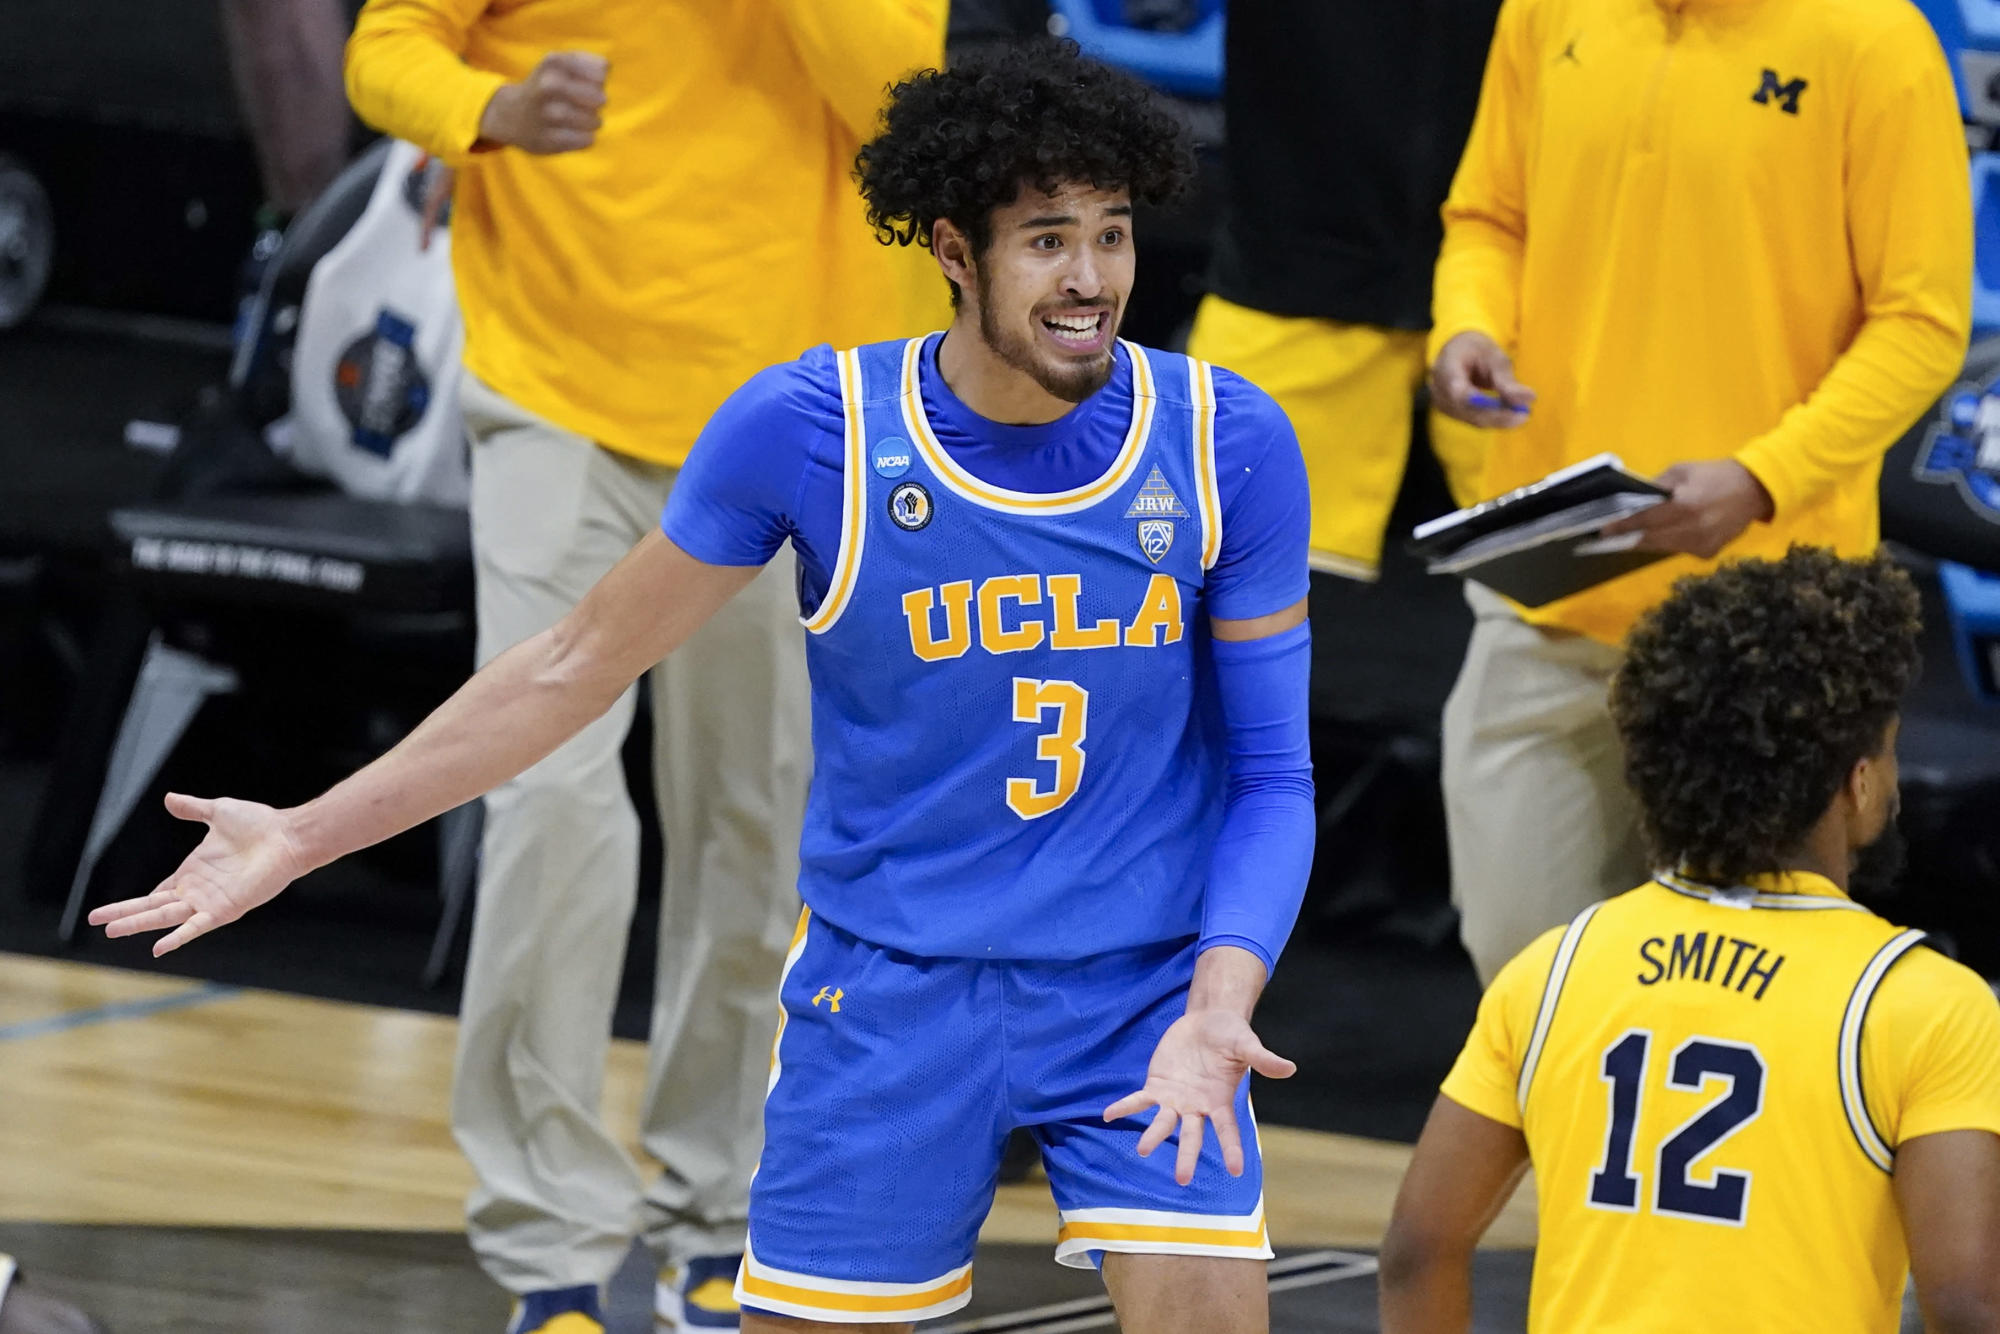 sports.yahoo.com: UCLA's Juzang could be first Asian American NBA lottery pick